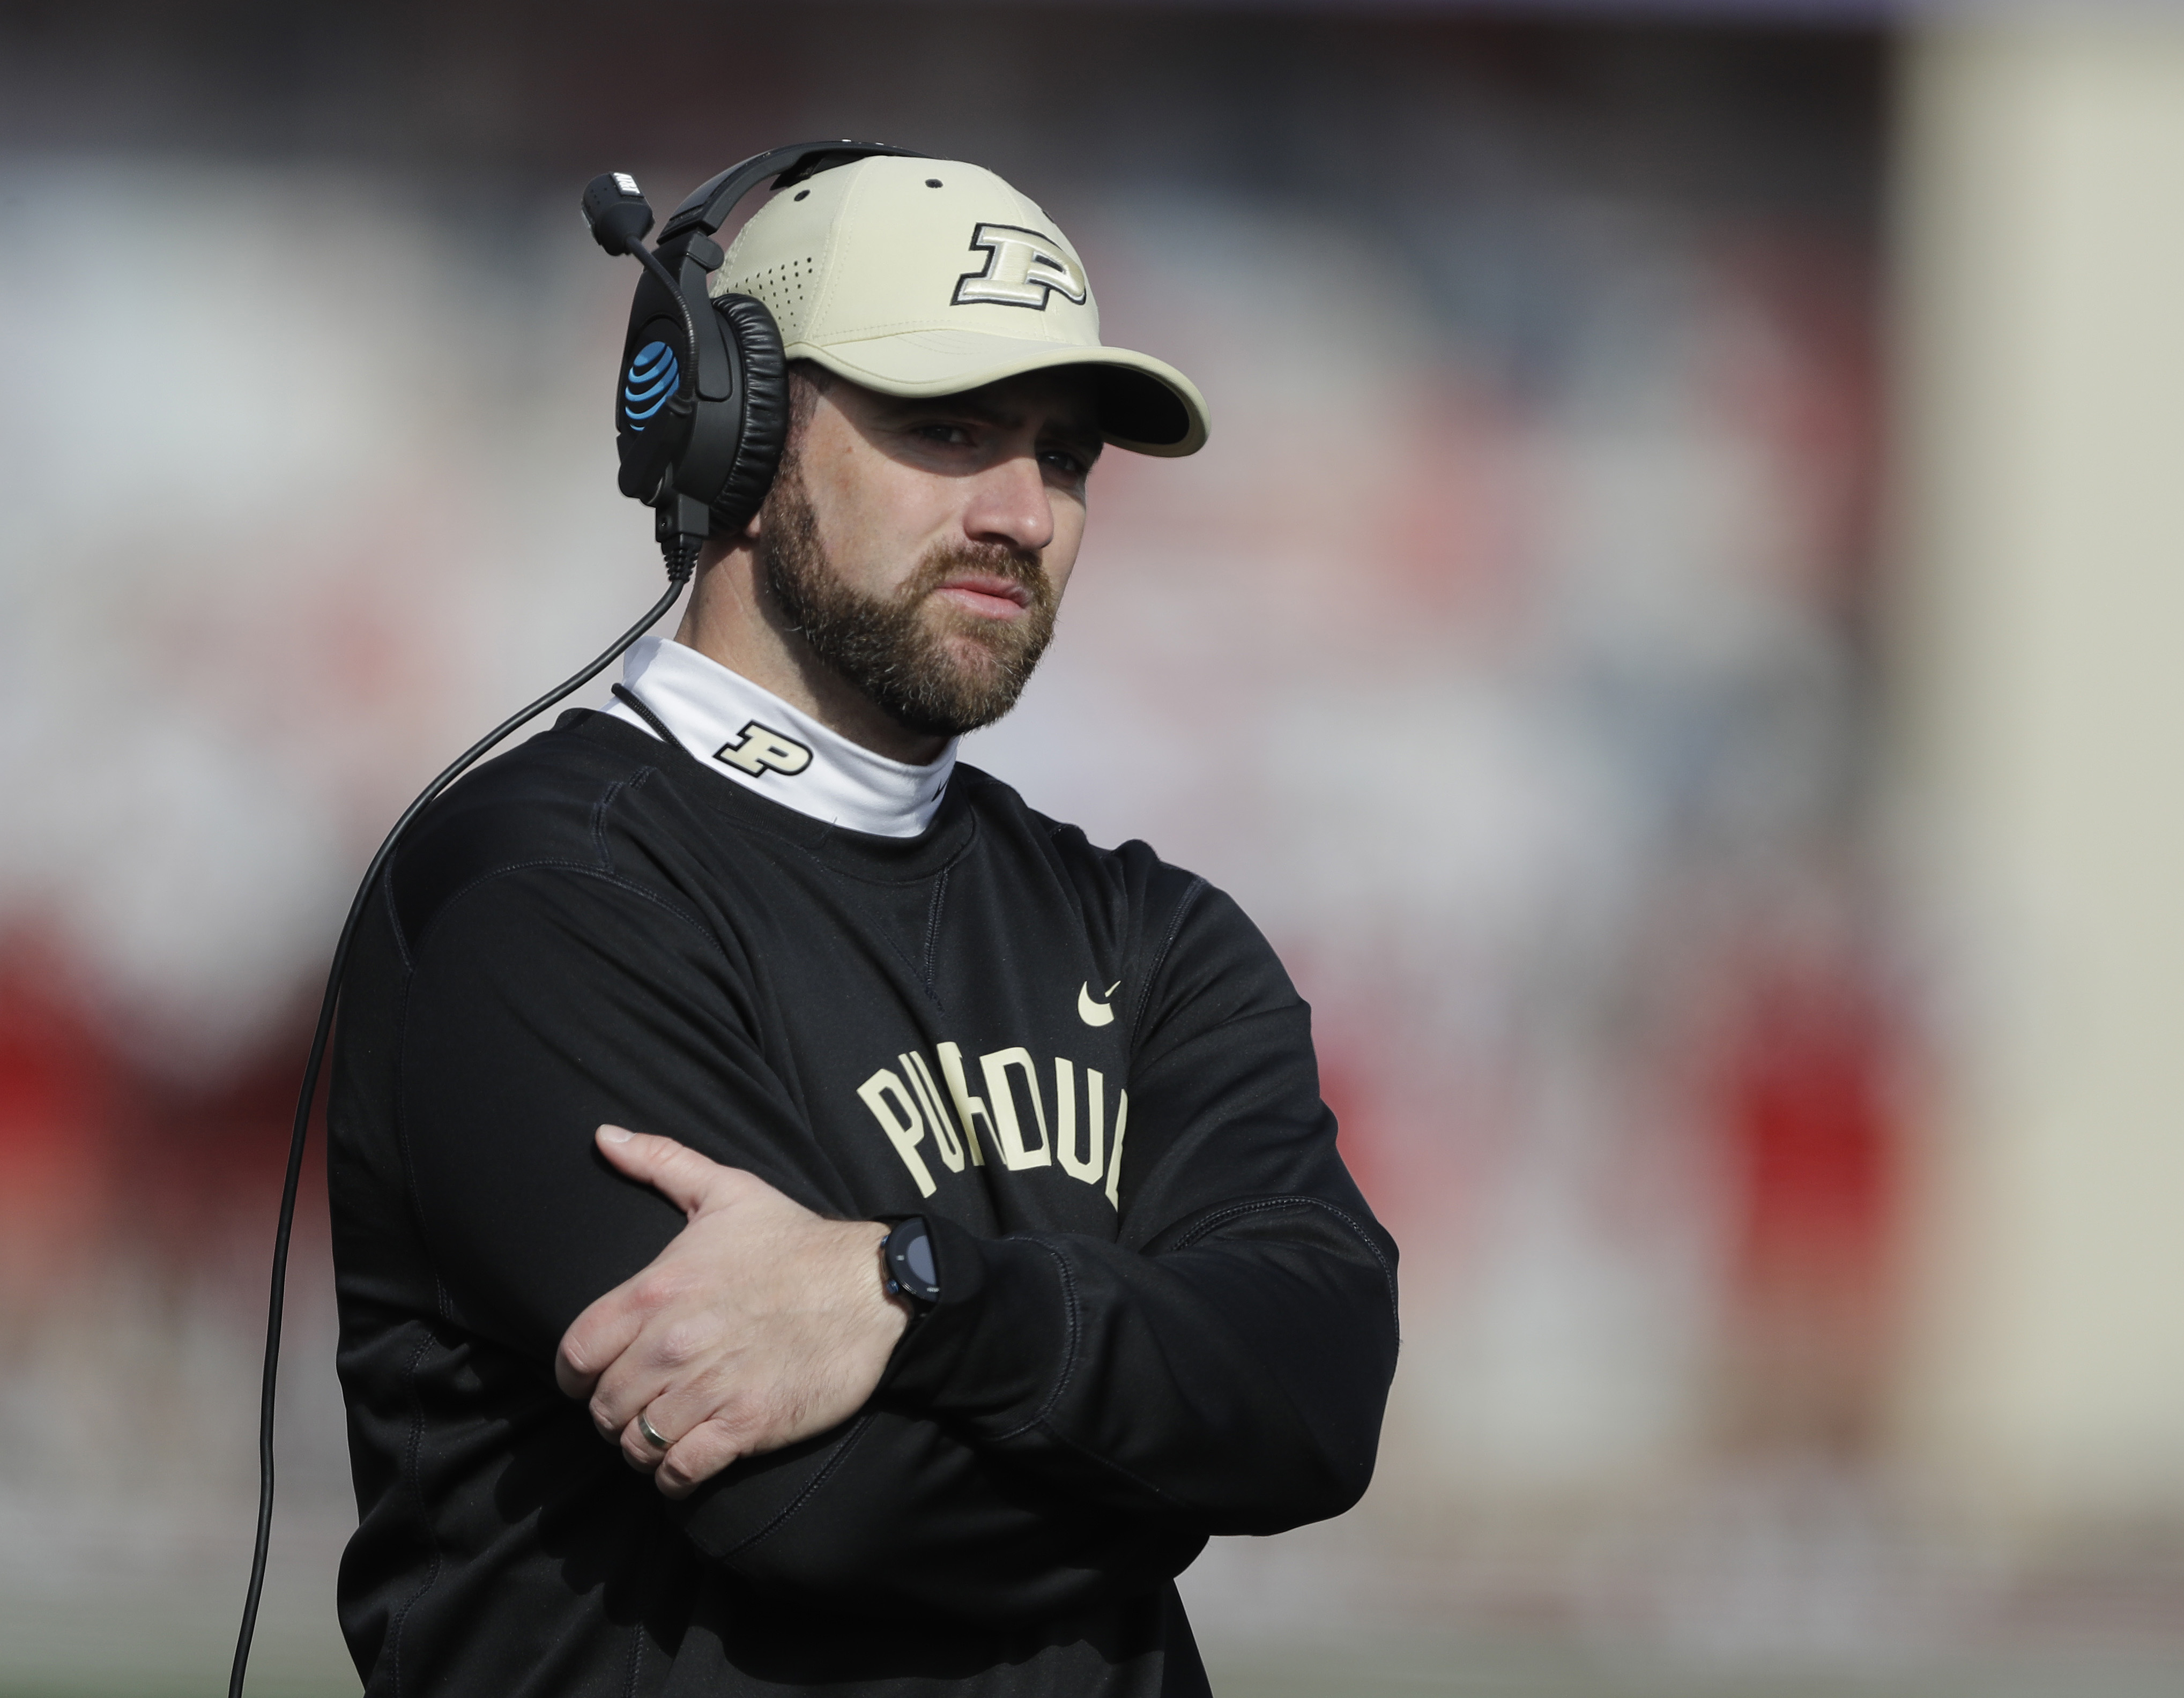 Purdue interim head coach Gerad Parker watches during the first half of an NCAA college football game against Indiana, Saturday, Nov. 26, 2016, in Bloomington, Ind. (AP Photo/Darron Cummings)